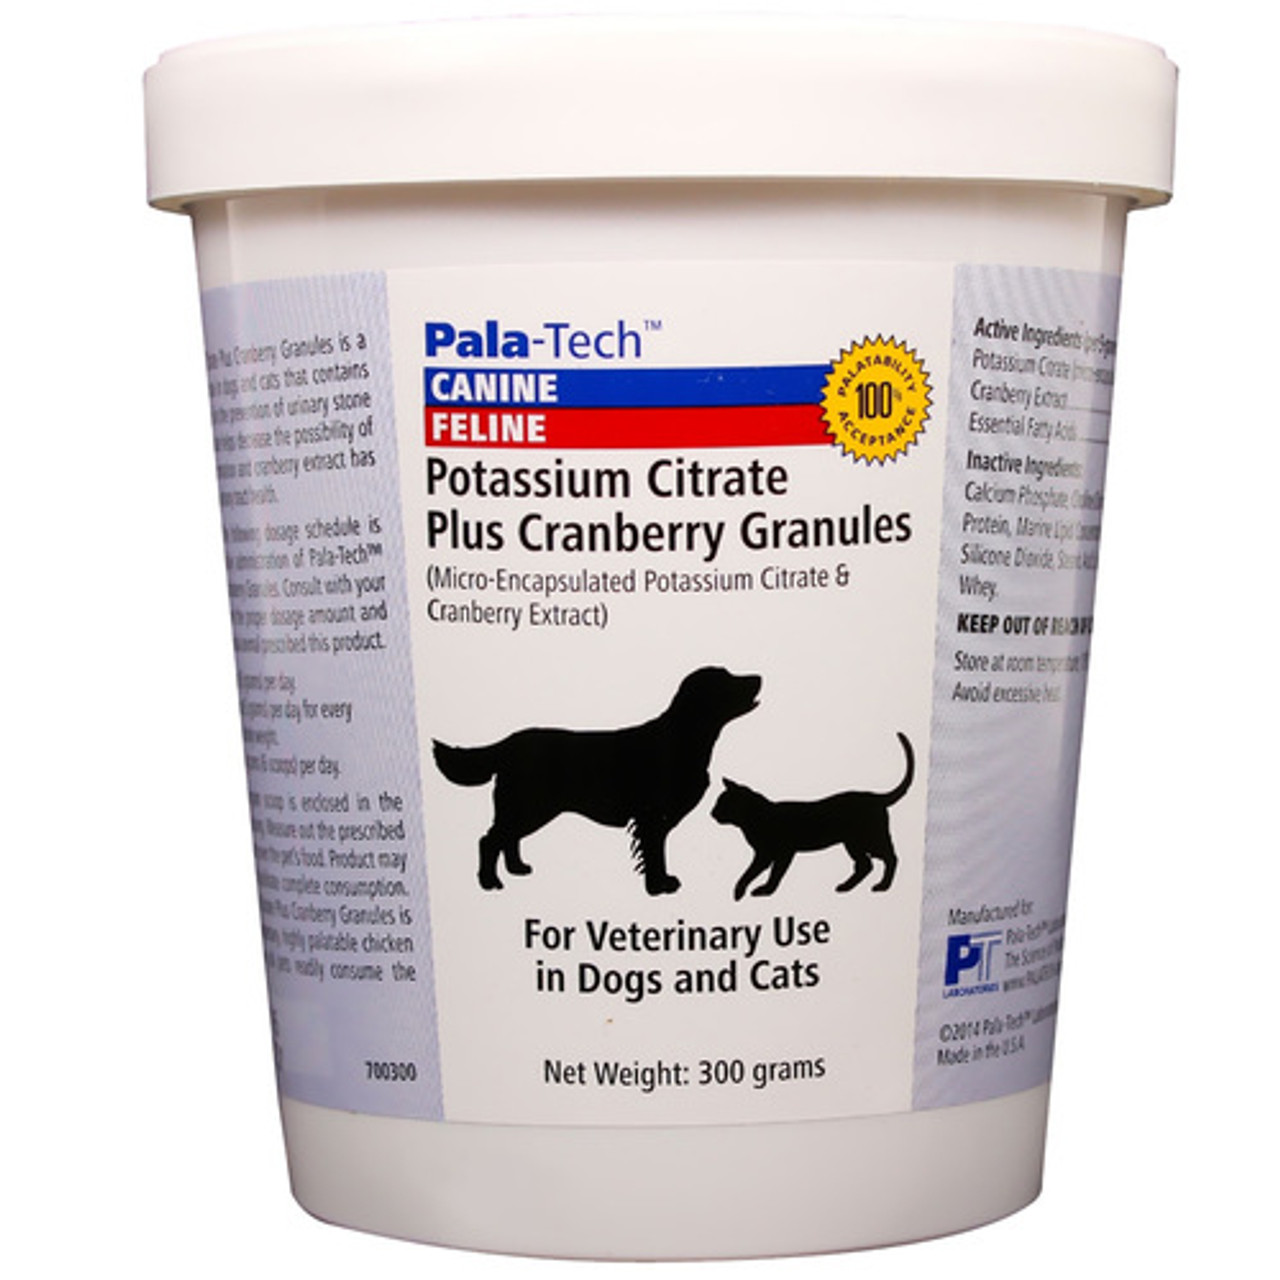 Potassium Citrate Plus Cranberry Granules for Dogs & Cats